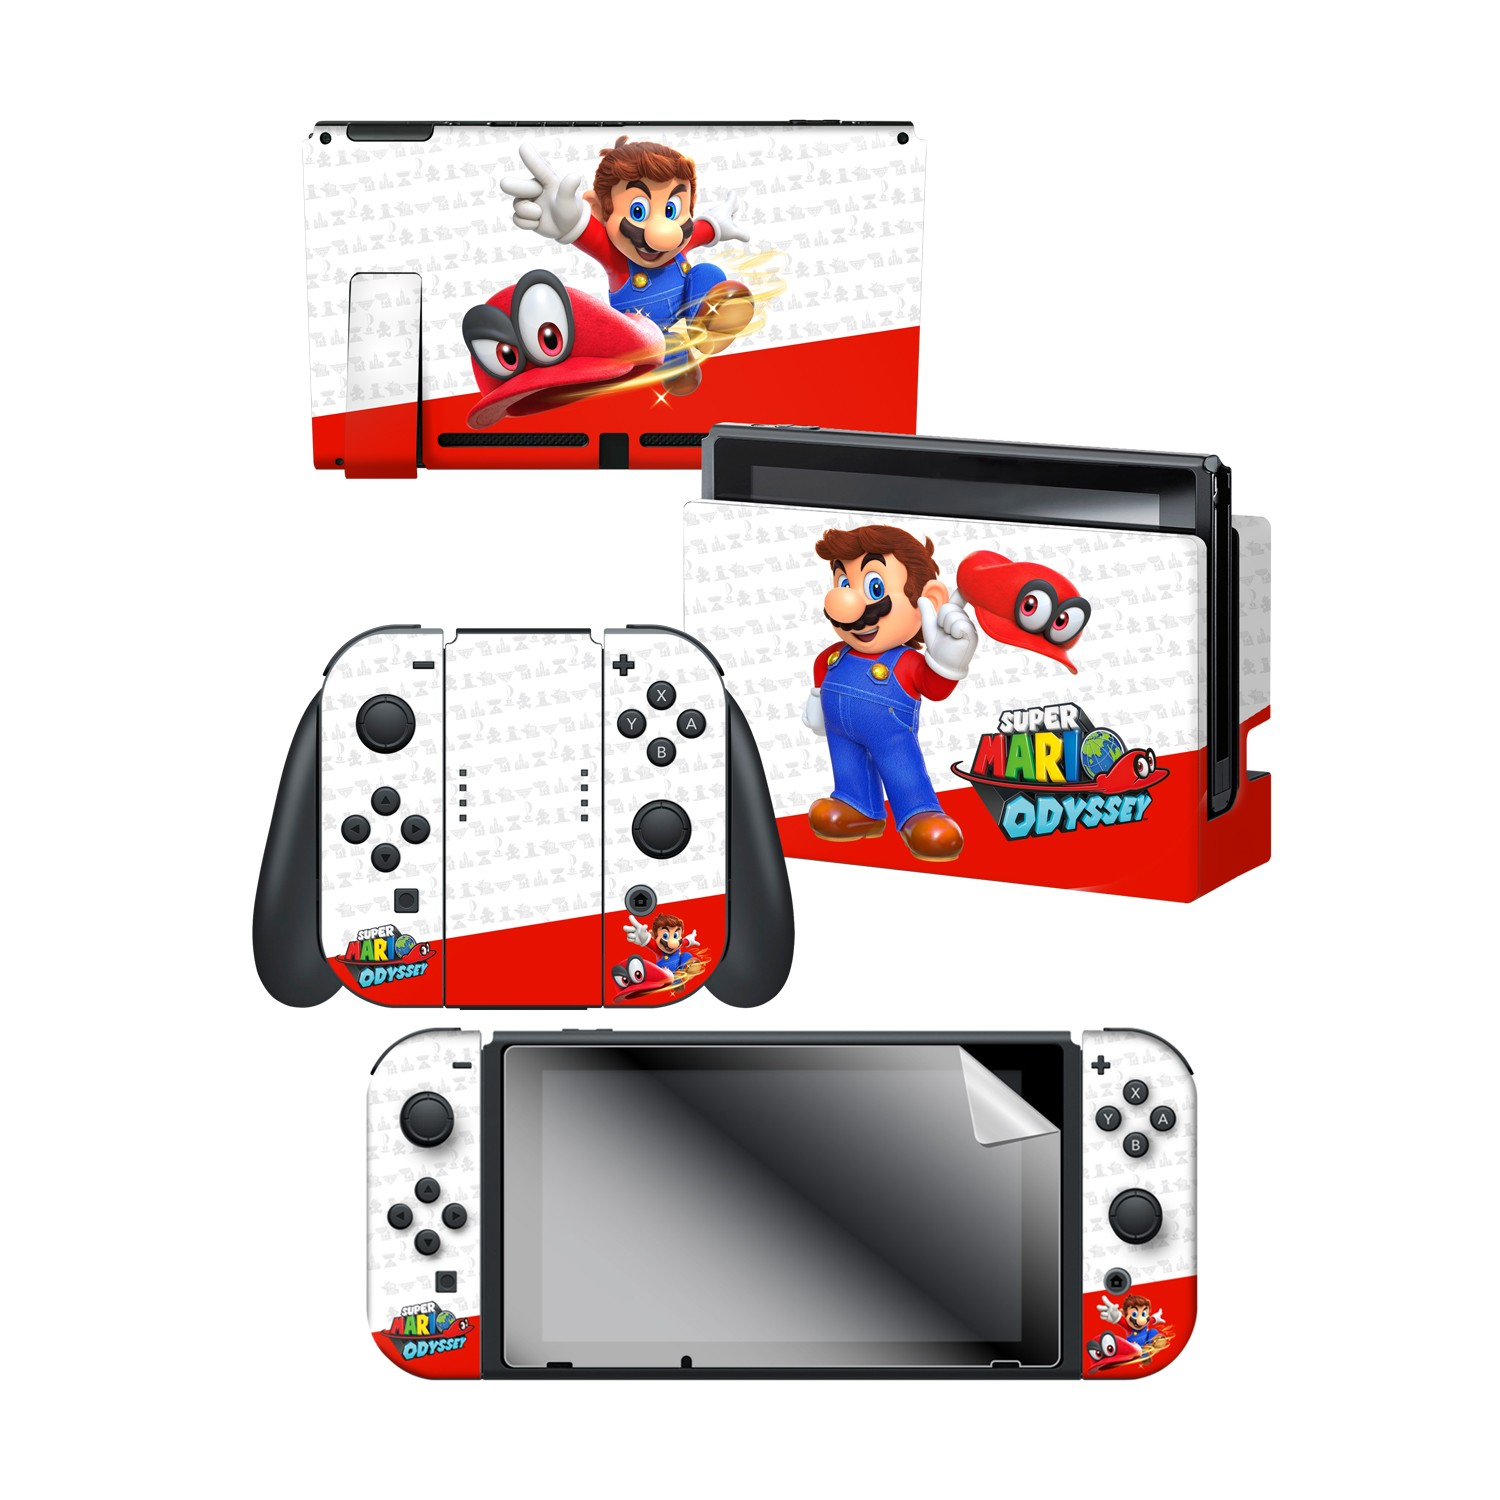 "Super Mario Odyssey™ ""Odyssey"" Nintendo Switch™ Console skin + Dock Skin + Joy-Con™ skin + Joy-Con™ Grip Skin + Screen Protector Bundle Assortment"